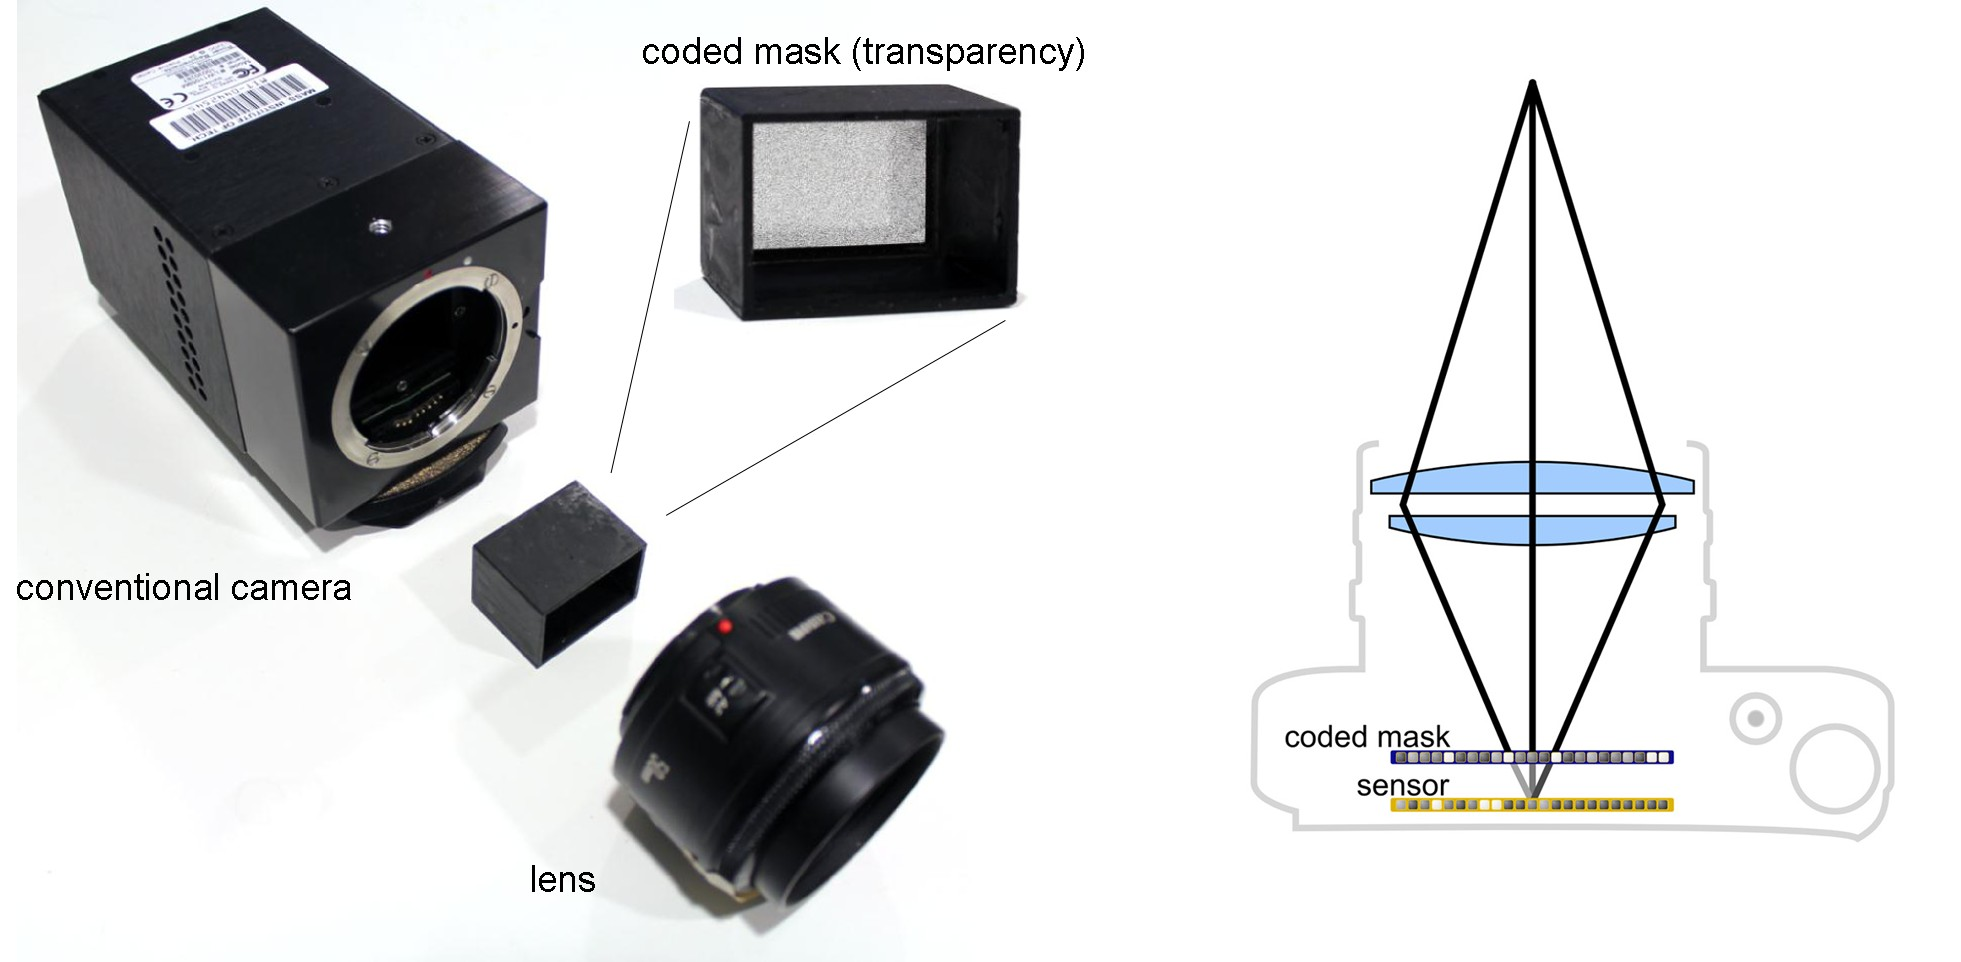 Second prototype light field camera. A conventional camera can also be retrofitted with a simple transparency mask to facilitate compressive light field photography (left). As shown on the right, the mask blocks some of the light rays inside the camera and therefore codes the captured image. This optical design combined with compressive computational processing could be easily integrated into consumer products.